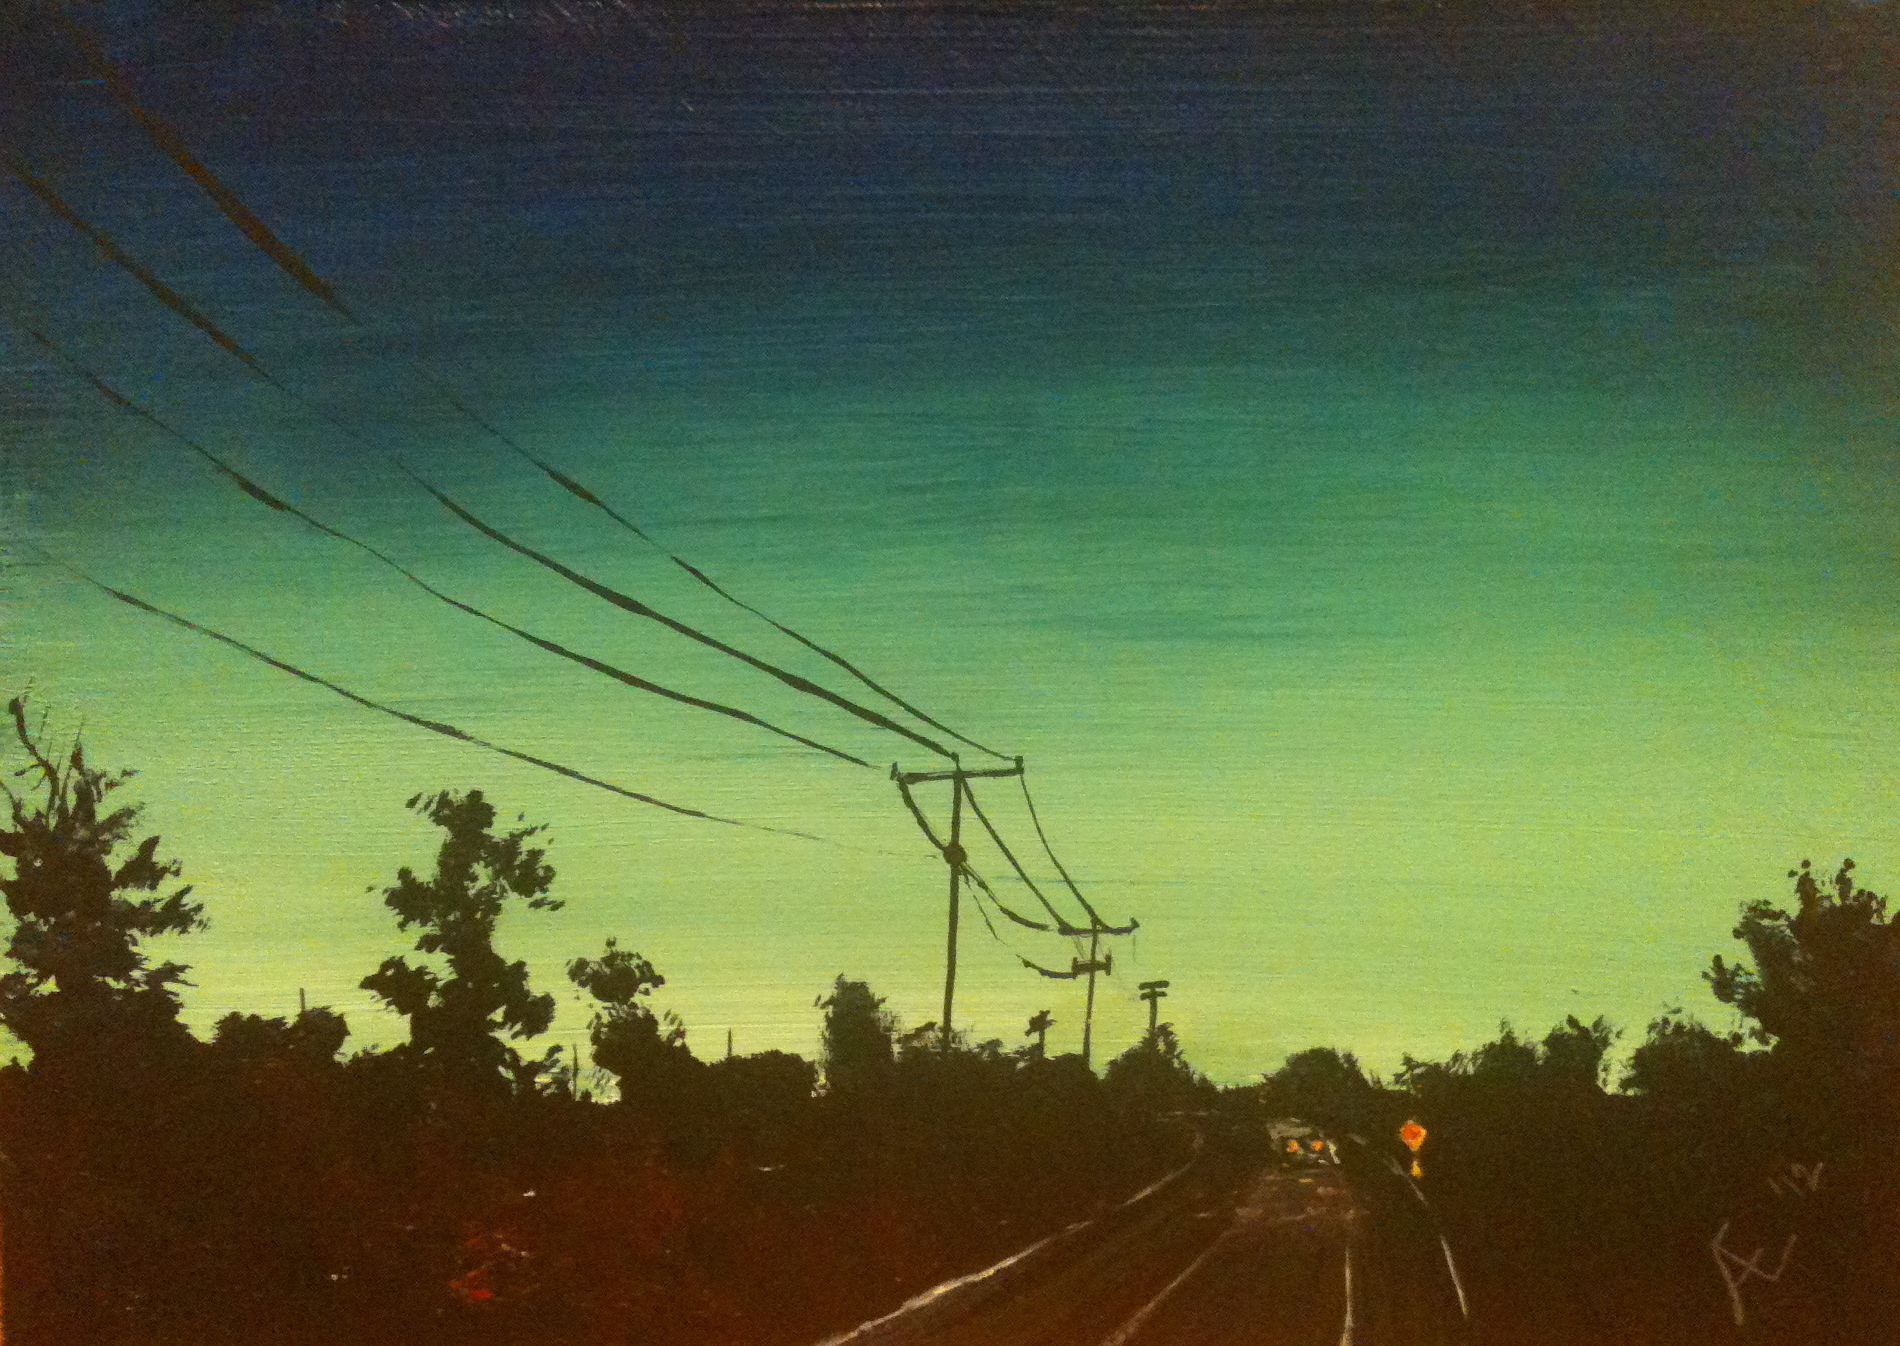 Powerlines at Dusk